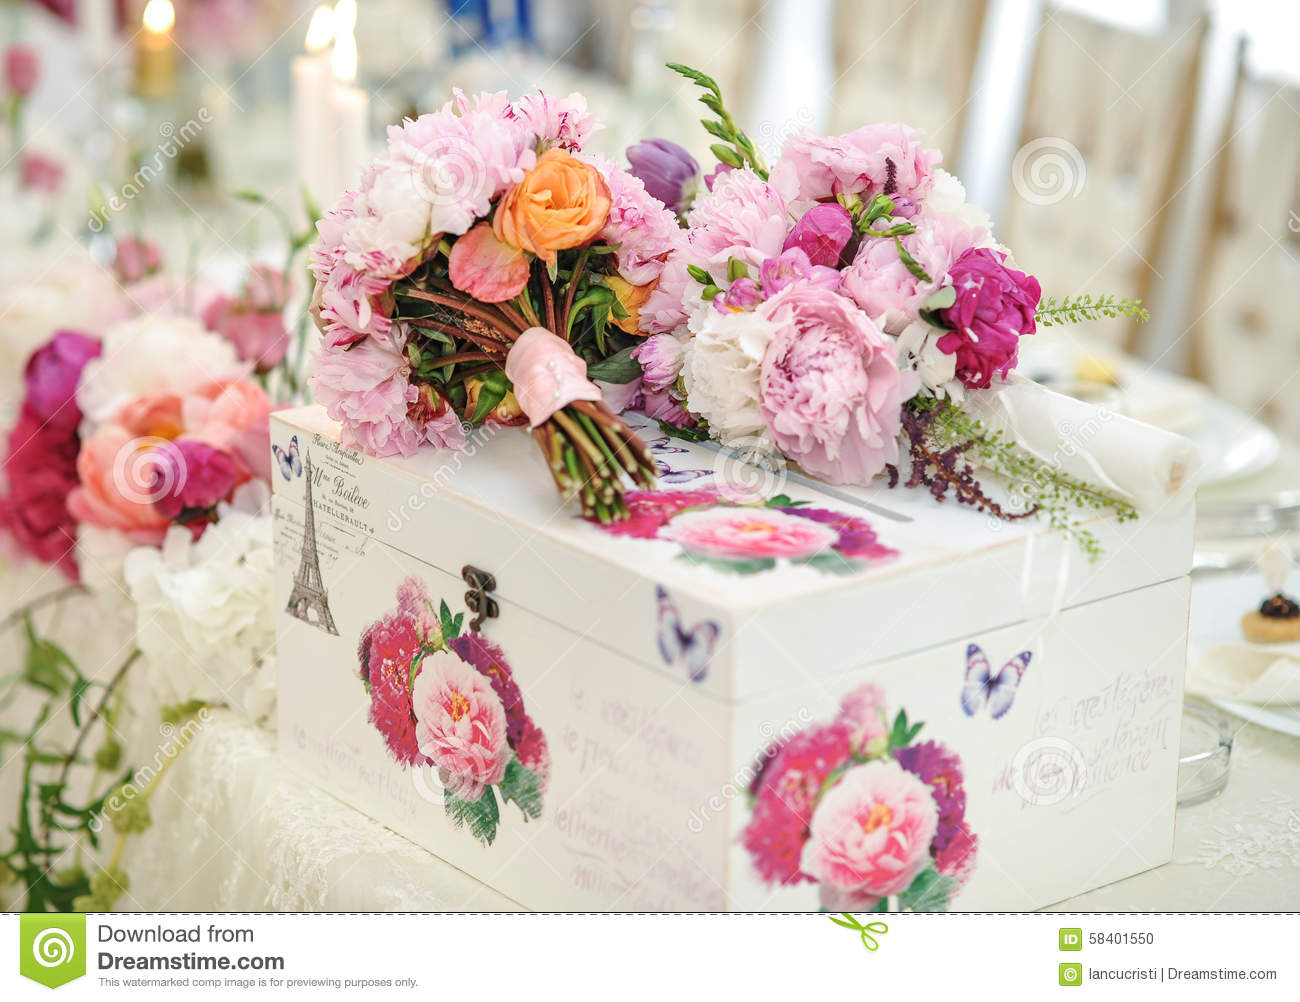 Wedding decoration on table floral arrangements and decoration wedding decoration on table floral arrangements and decoration arrangement of pink and white flowers junglespirit Image collections